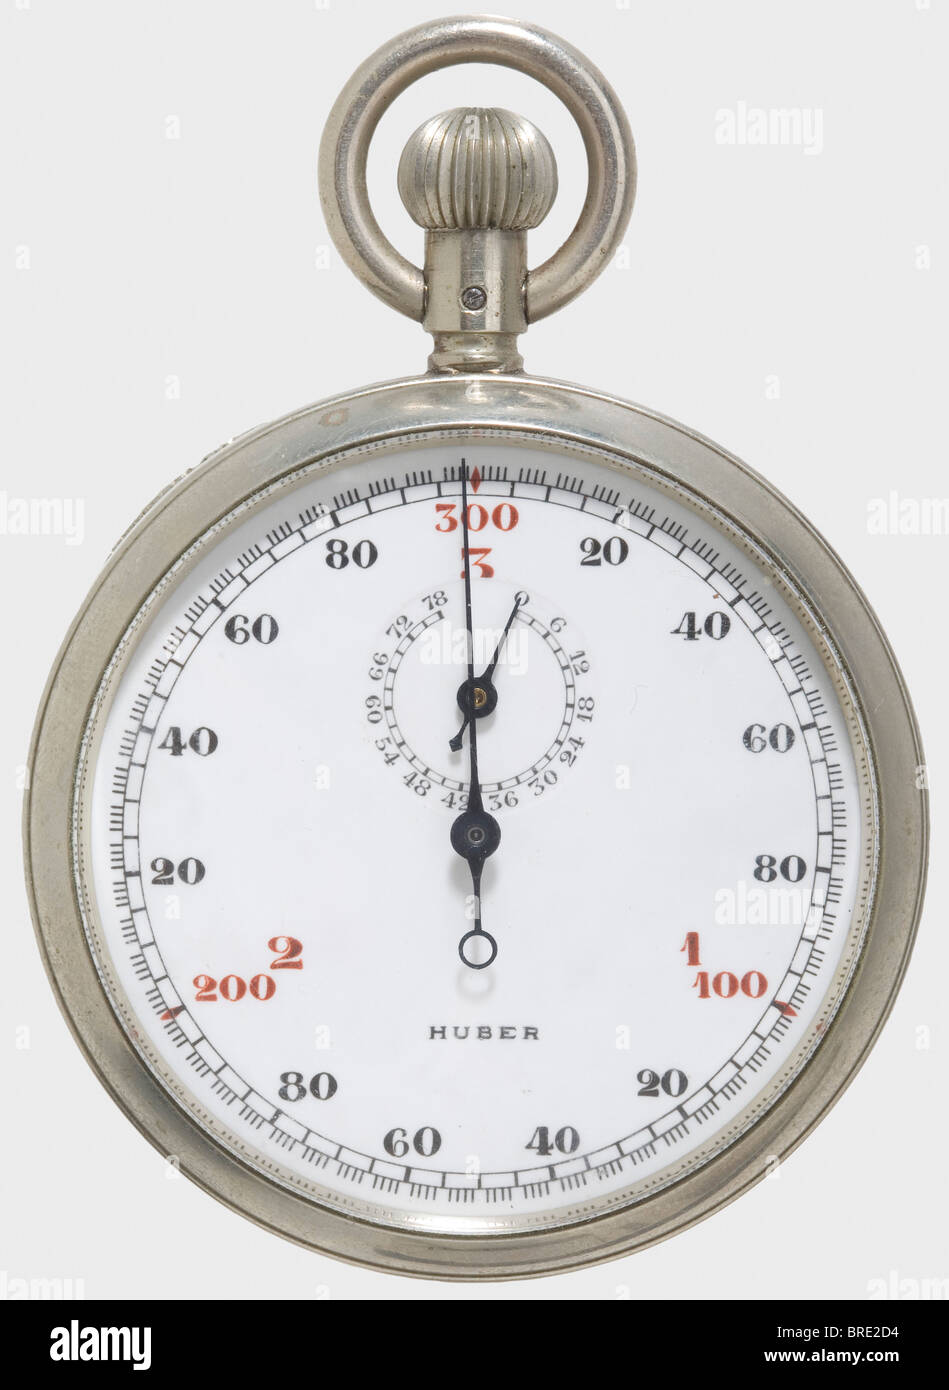 A German navy stop watch, for the measurement of sound travel time Precision stopwatch made by Andreas Huber, Munich - Stock Image